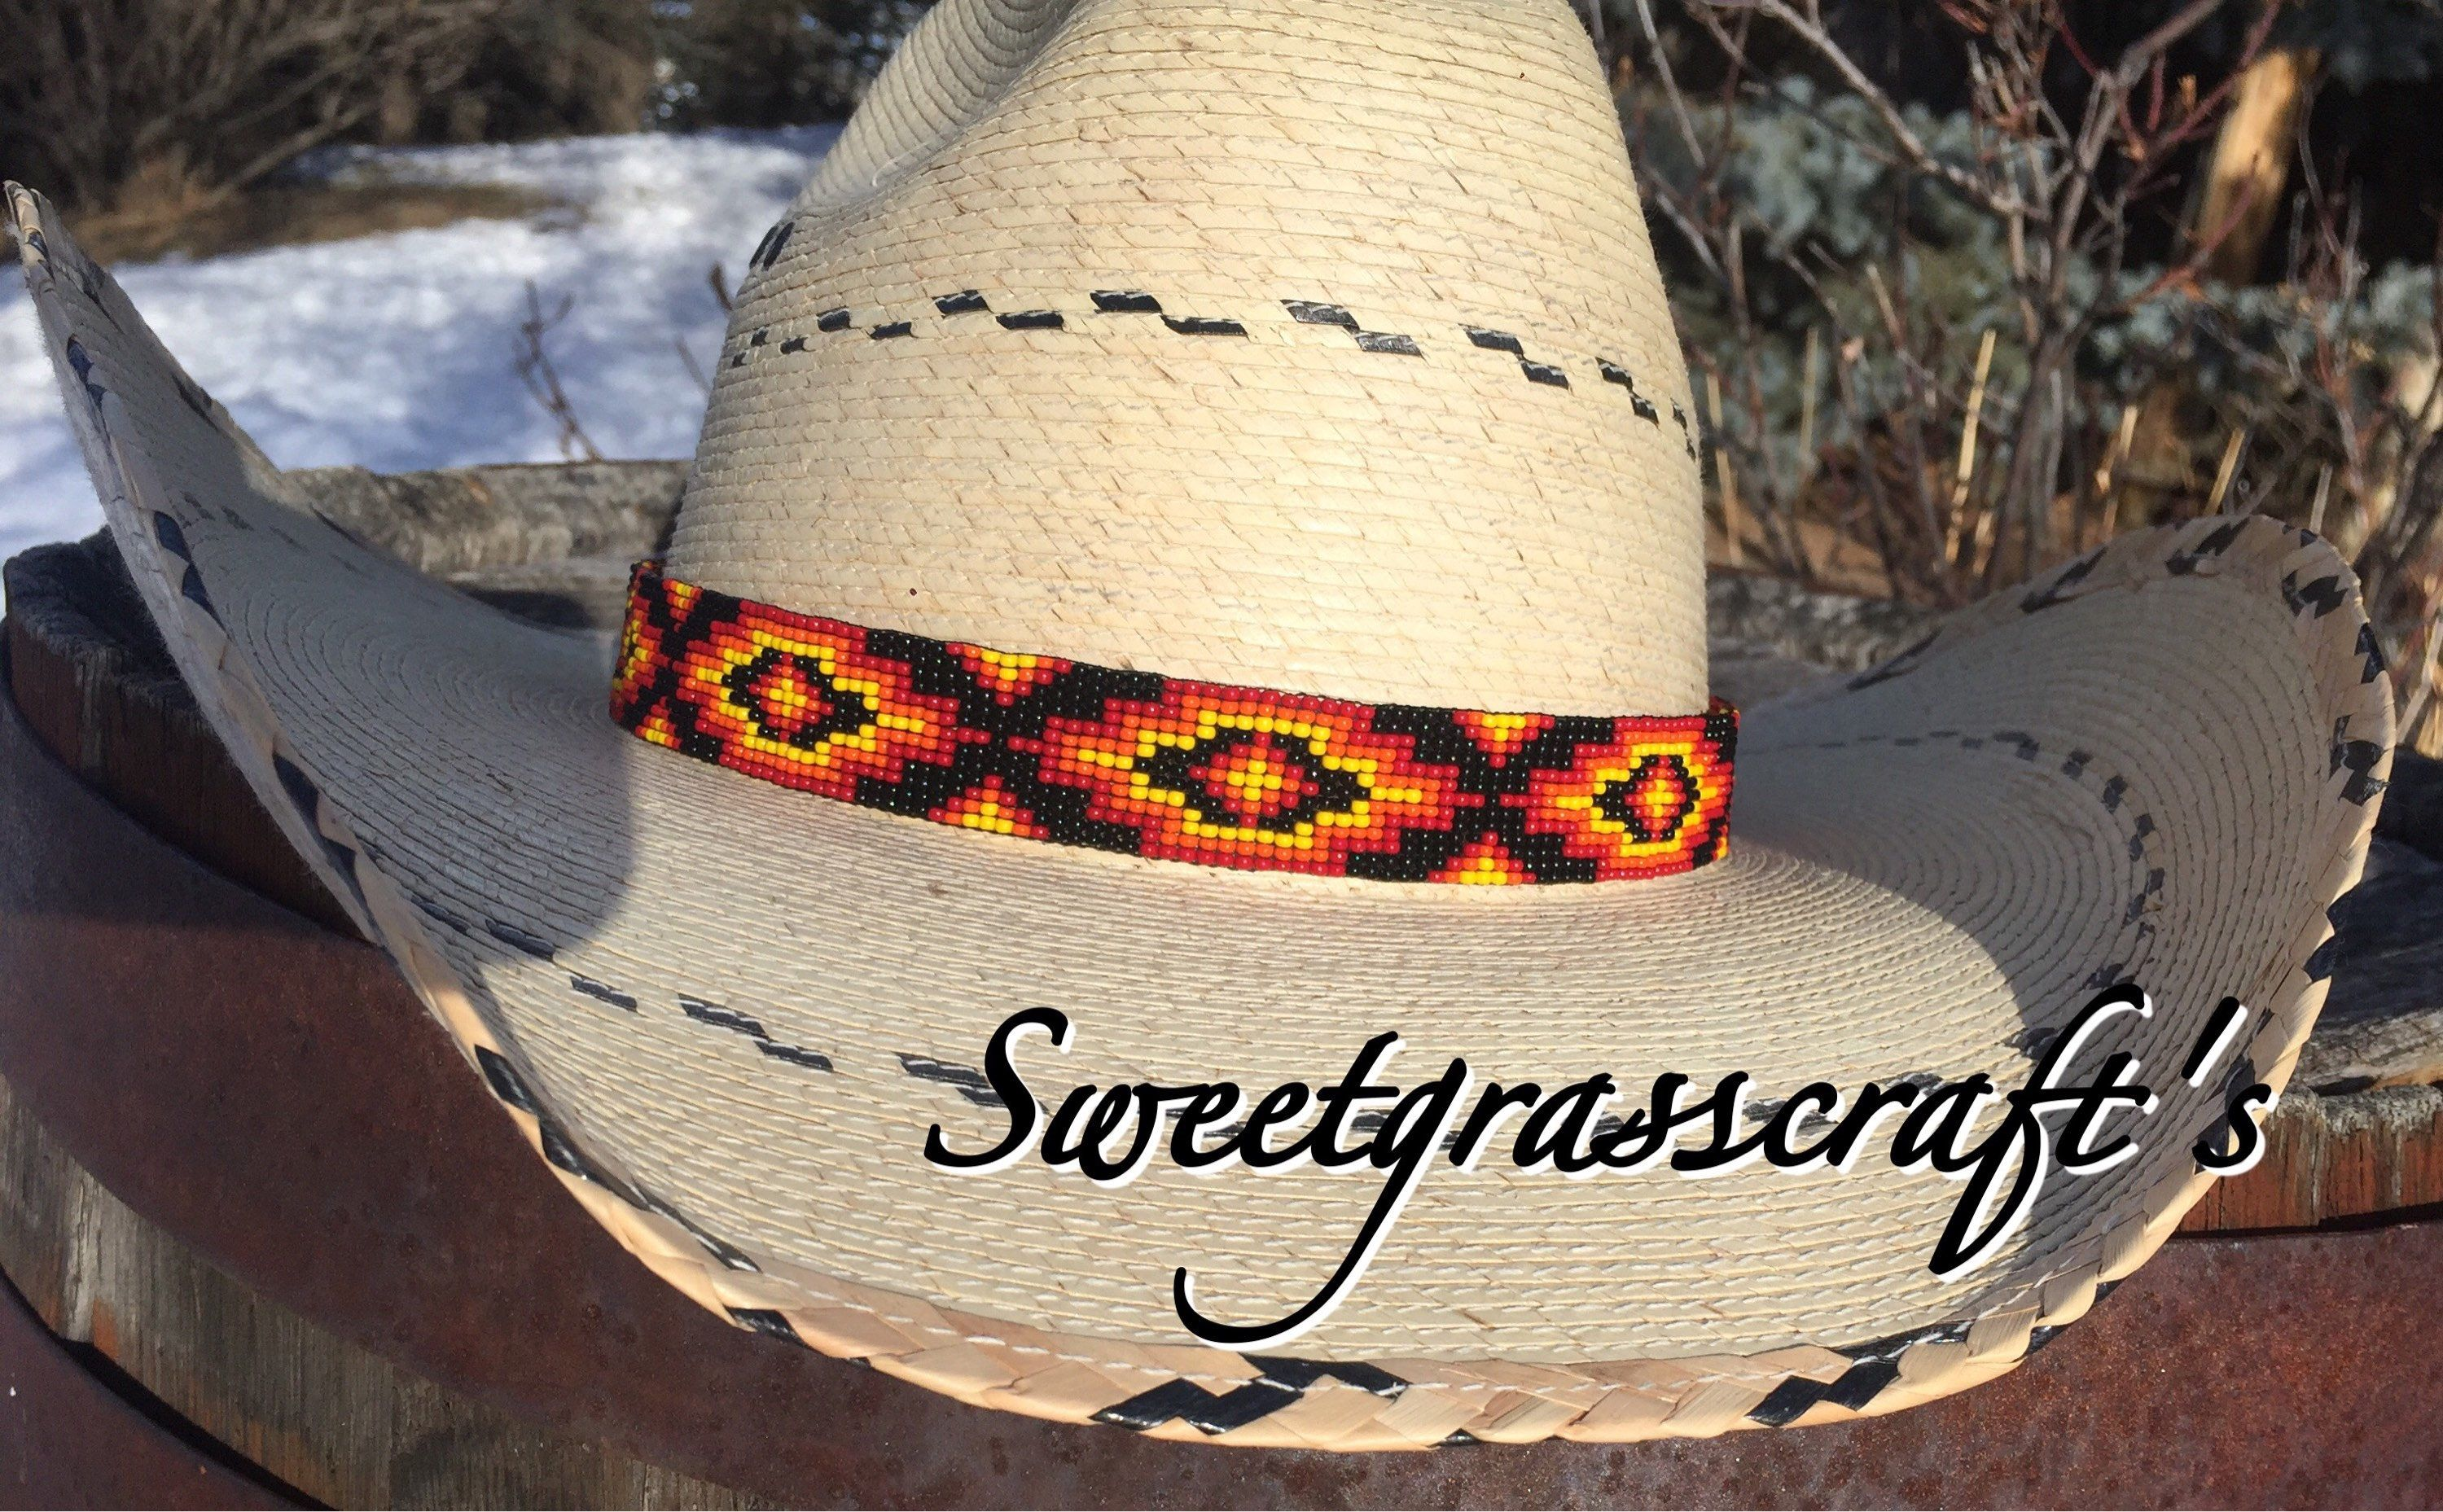 61b8429ab98 Beaded Cowboy hatband Sweetgrasscrafts.com A favorite Etsy shop https   www.